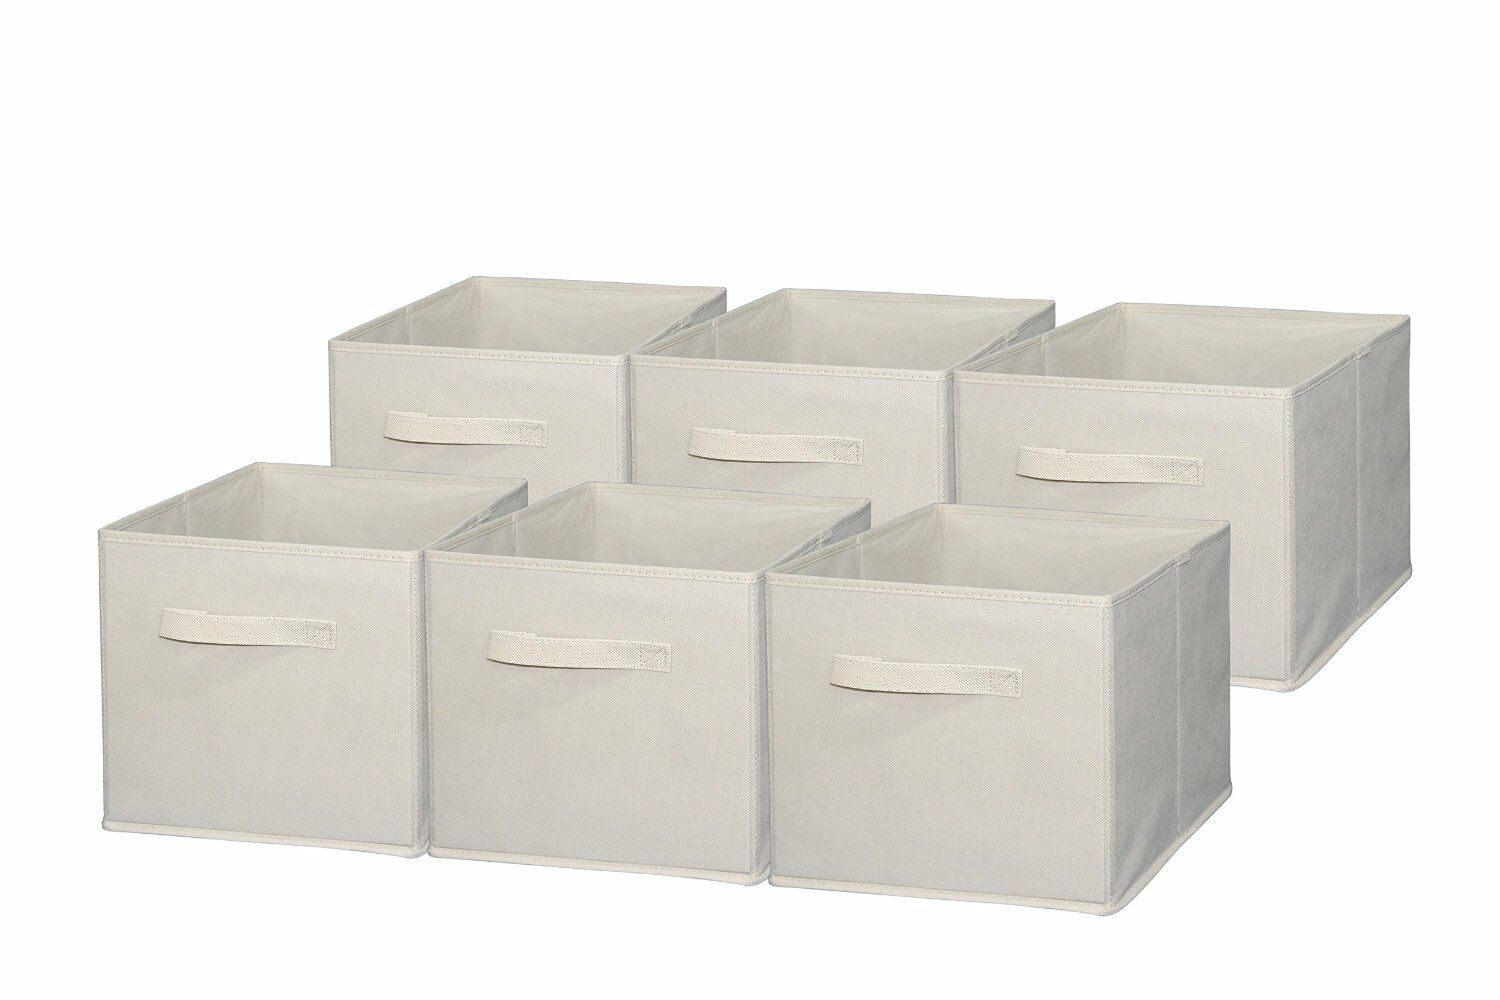 Foldable Cloth Storage Cube Basket Bins Organizer Containers Drawers 6 Pieces